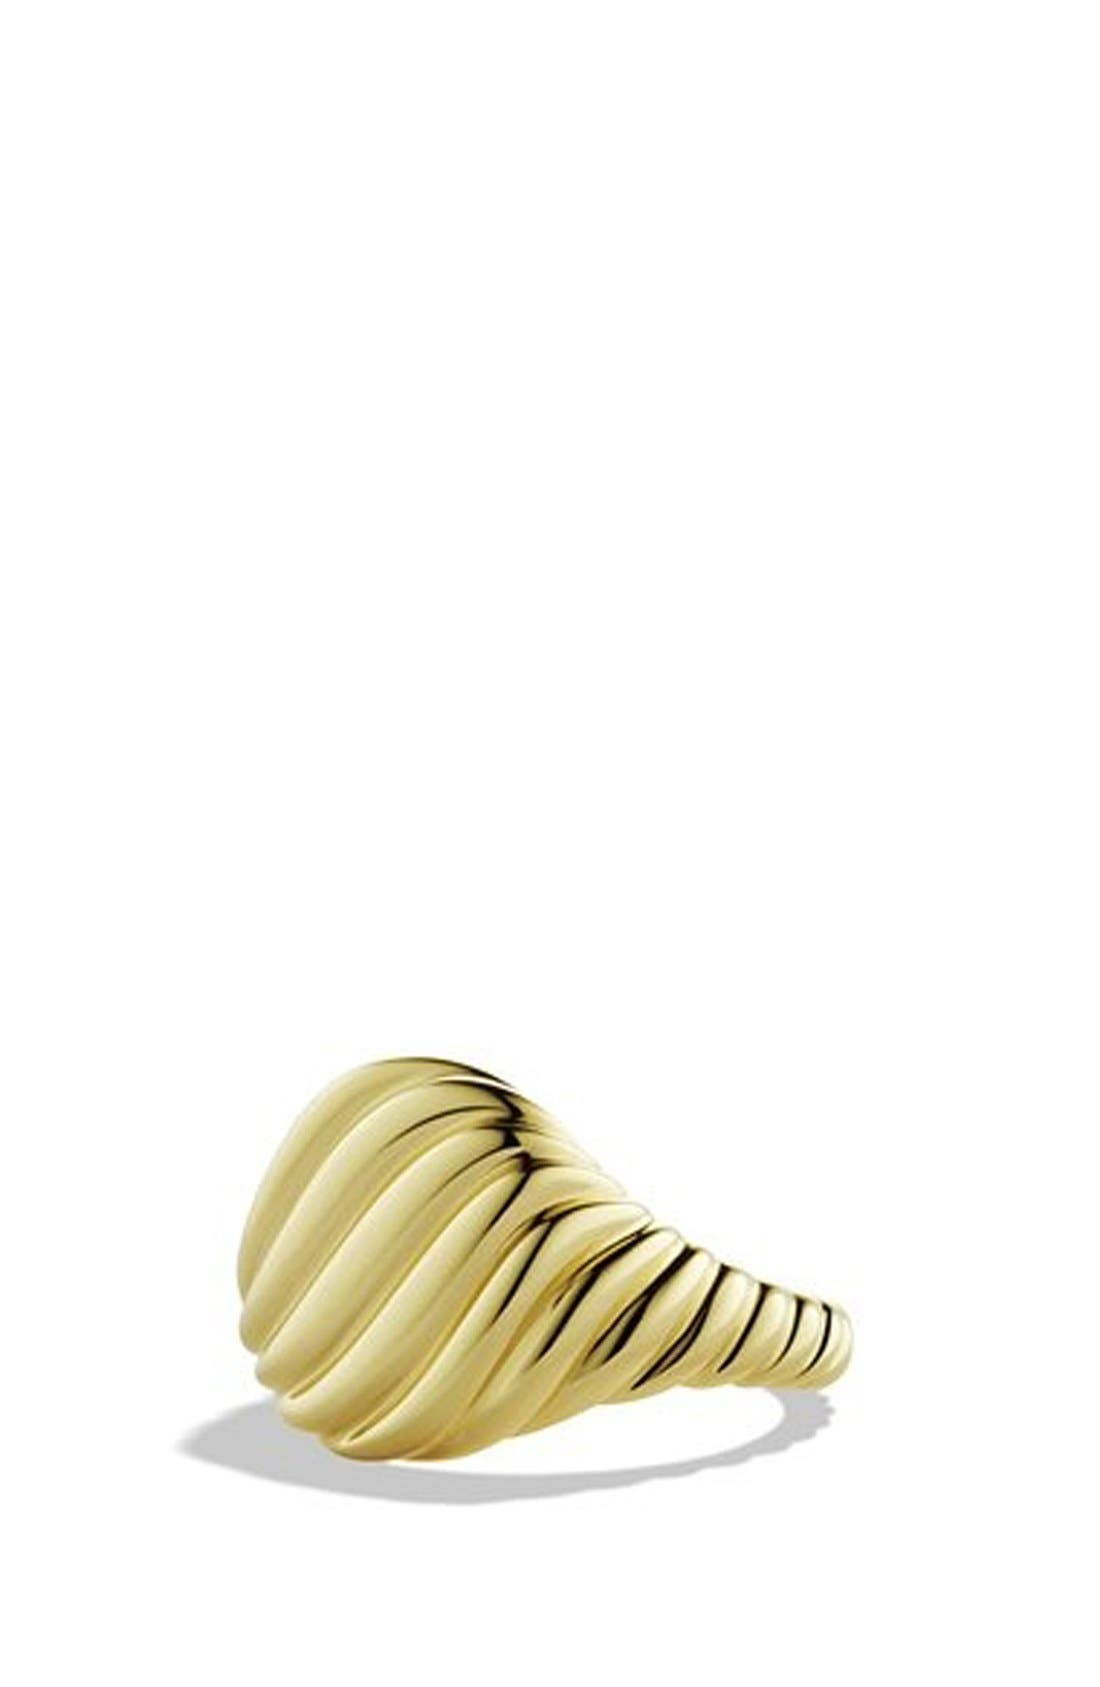 Main Image - David Yurman 'DY Signature' Cable Pinky Ring in Gold